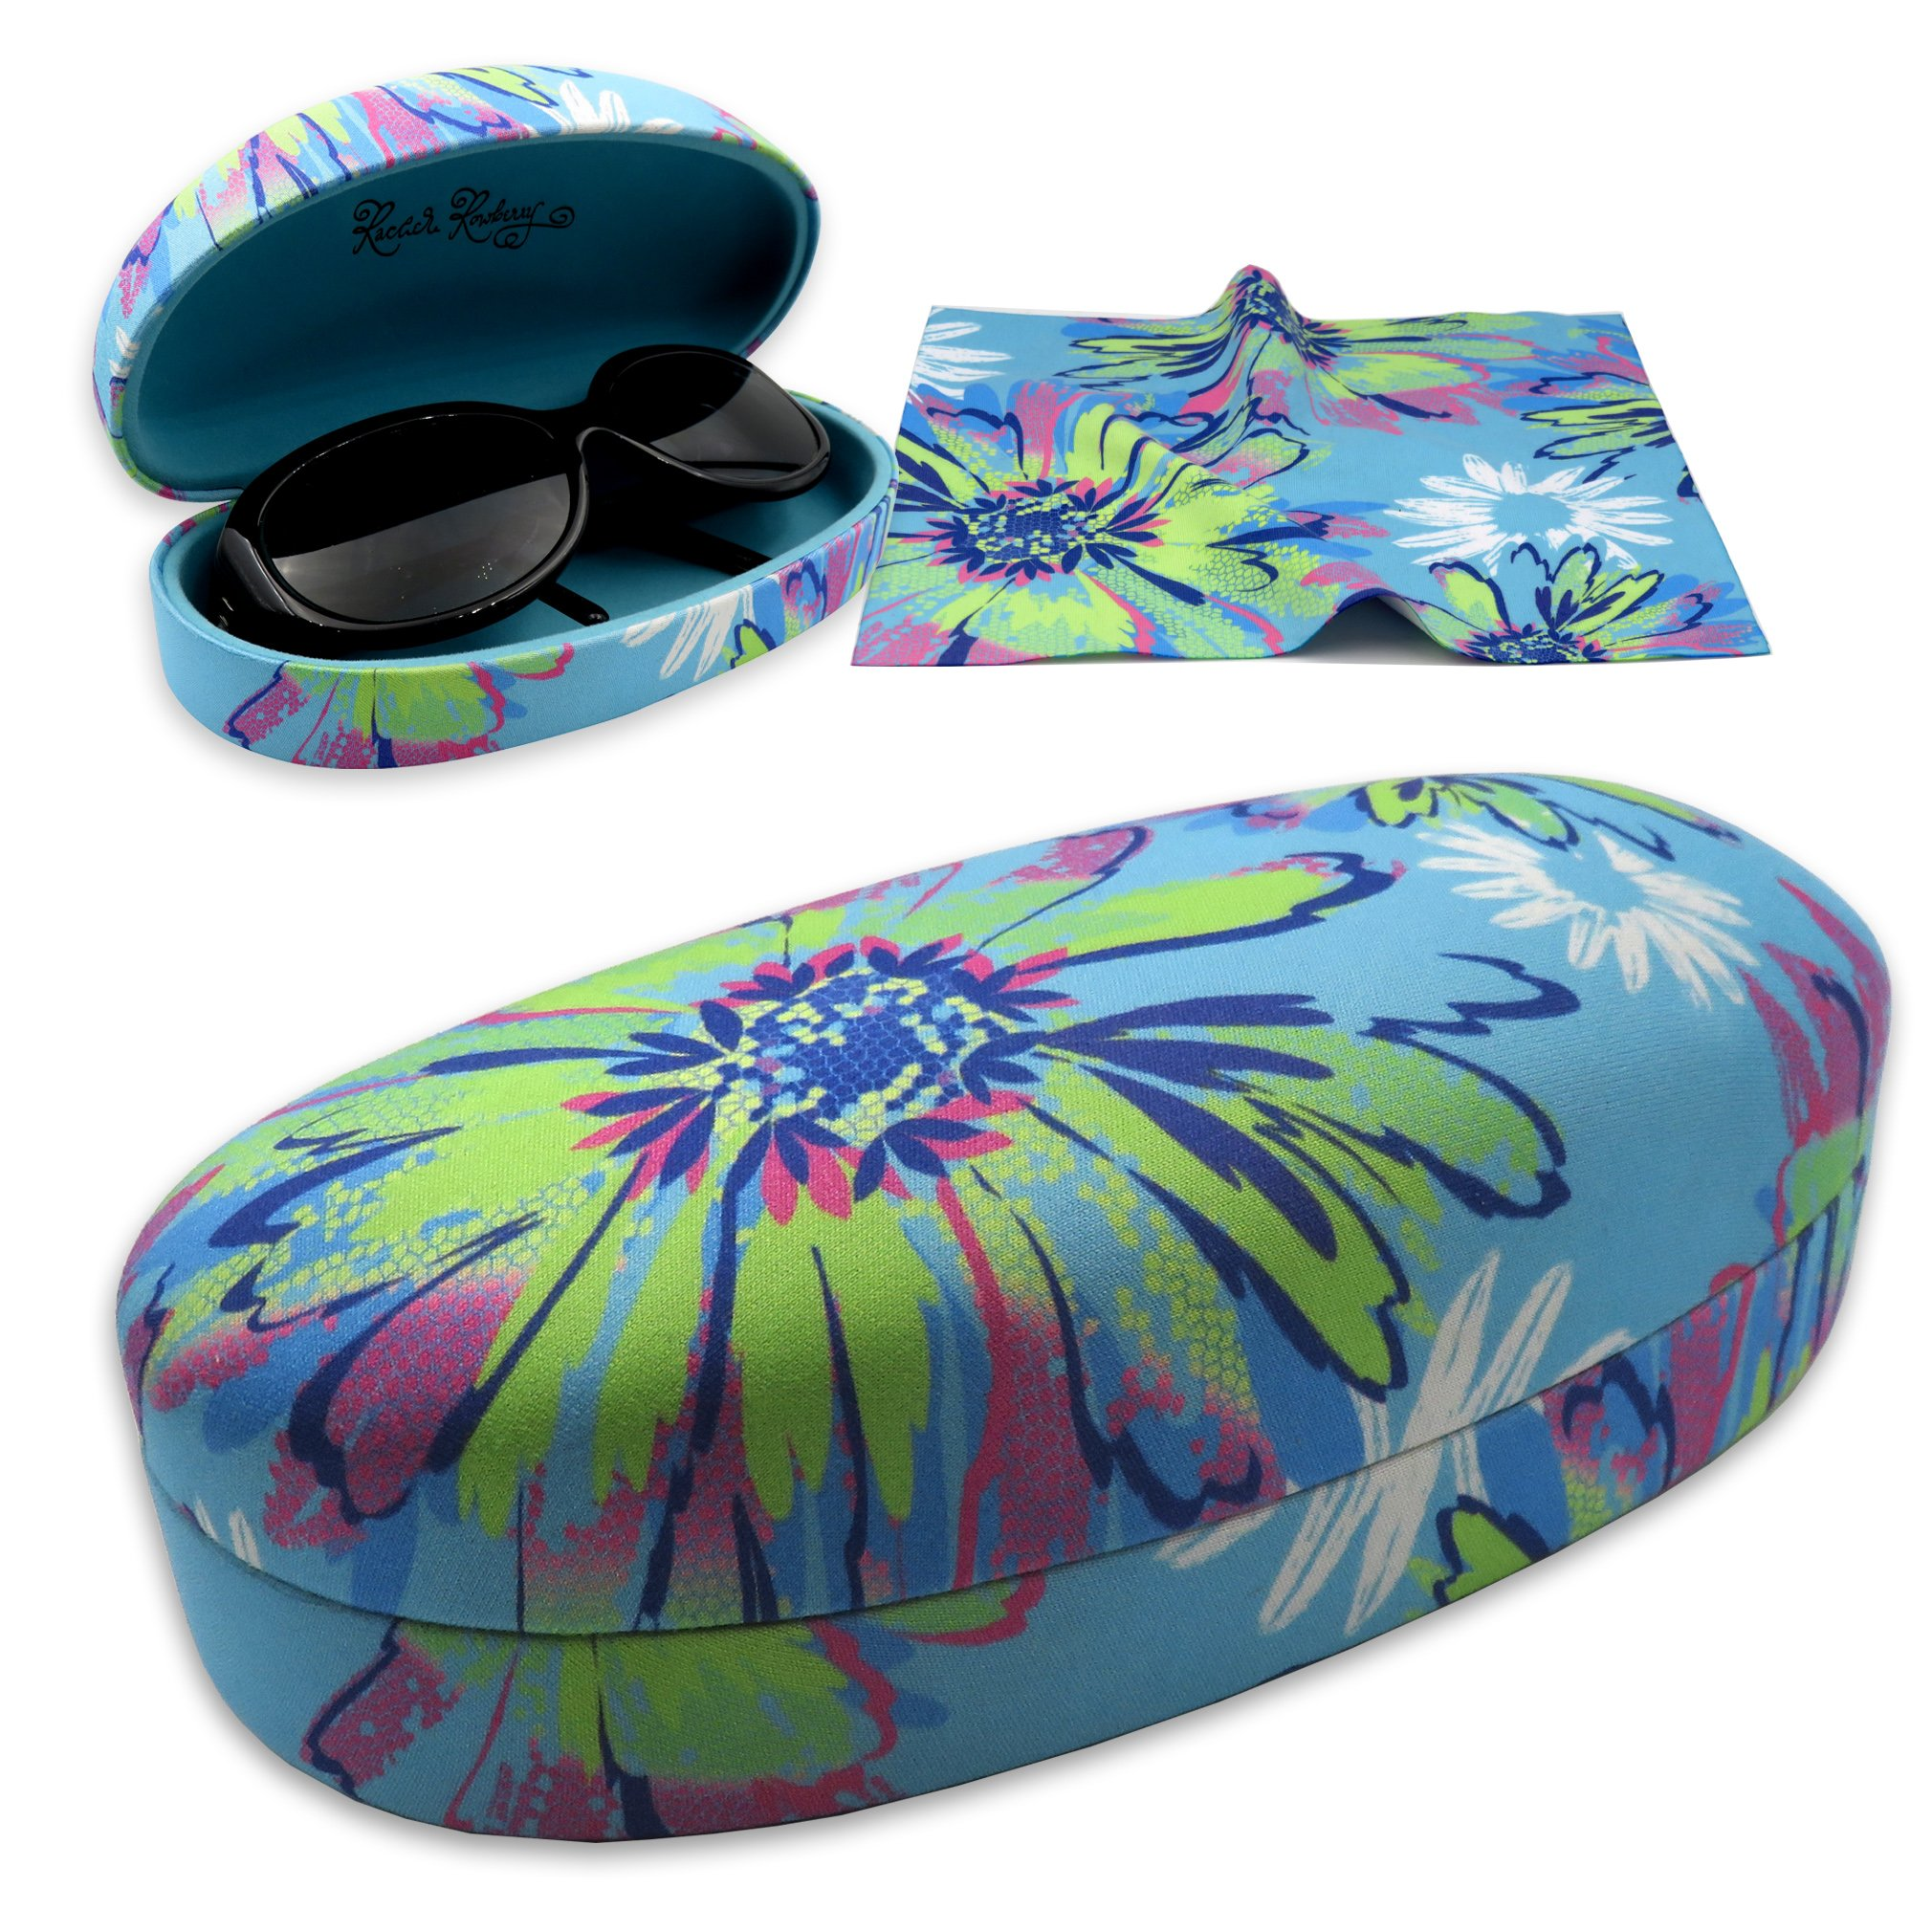 Rachel Rowberry Floral Sunglasses Case with eyeglass cleaning cloth in a unique Microfiber Smooth Finish | for Medium & Large frames (AS113 Pop Floral) by MyEyeglassCase